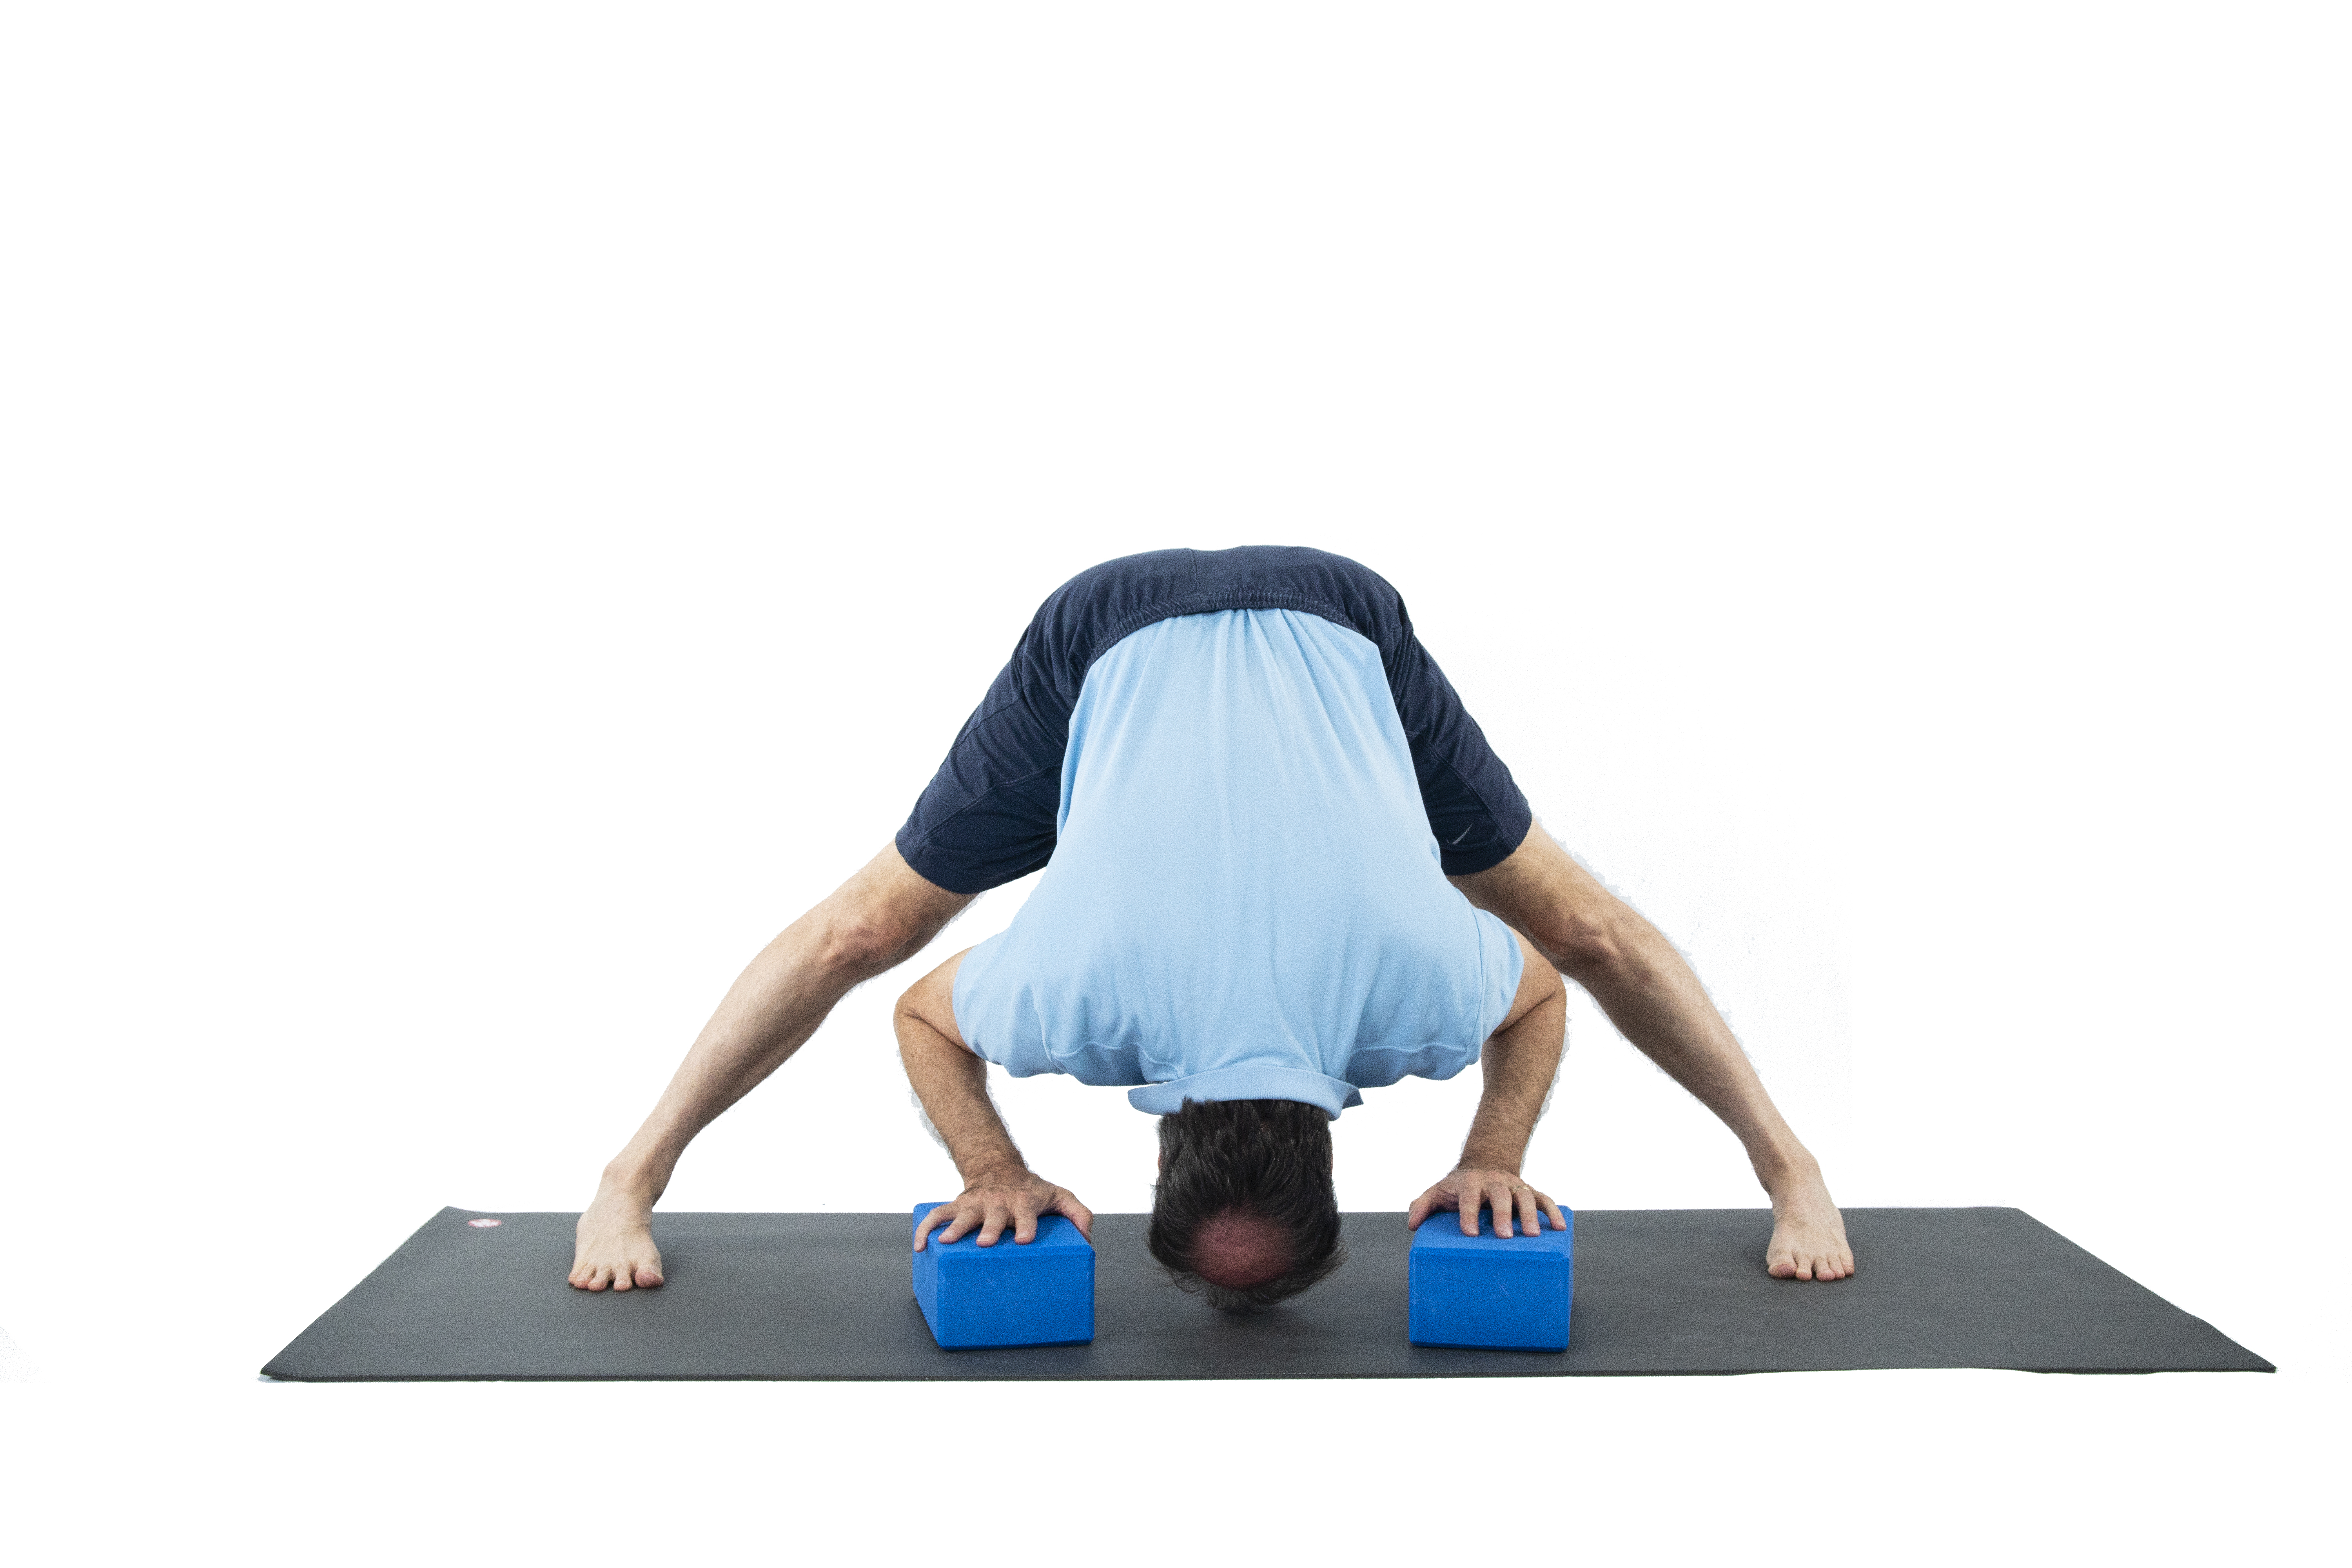 A man doing Wide-Legged Forward Fold (Prasarita Padottanasana) to prepare for the Warrior 2 yoga pose series